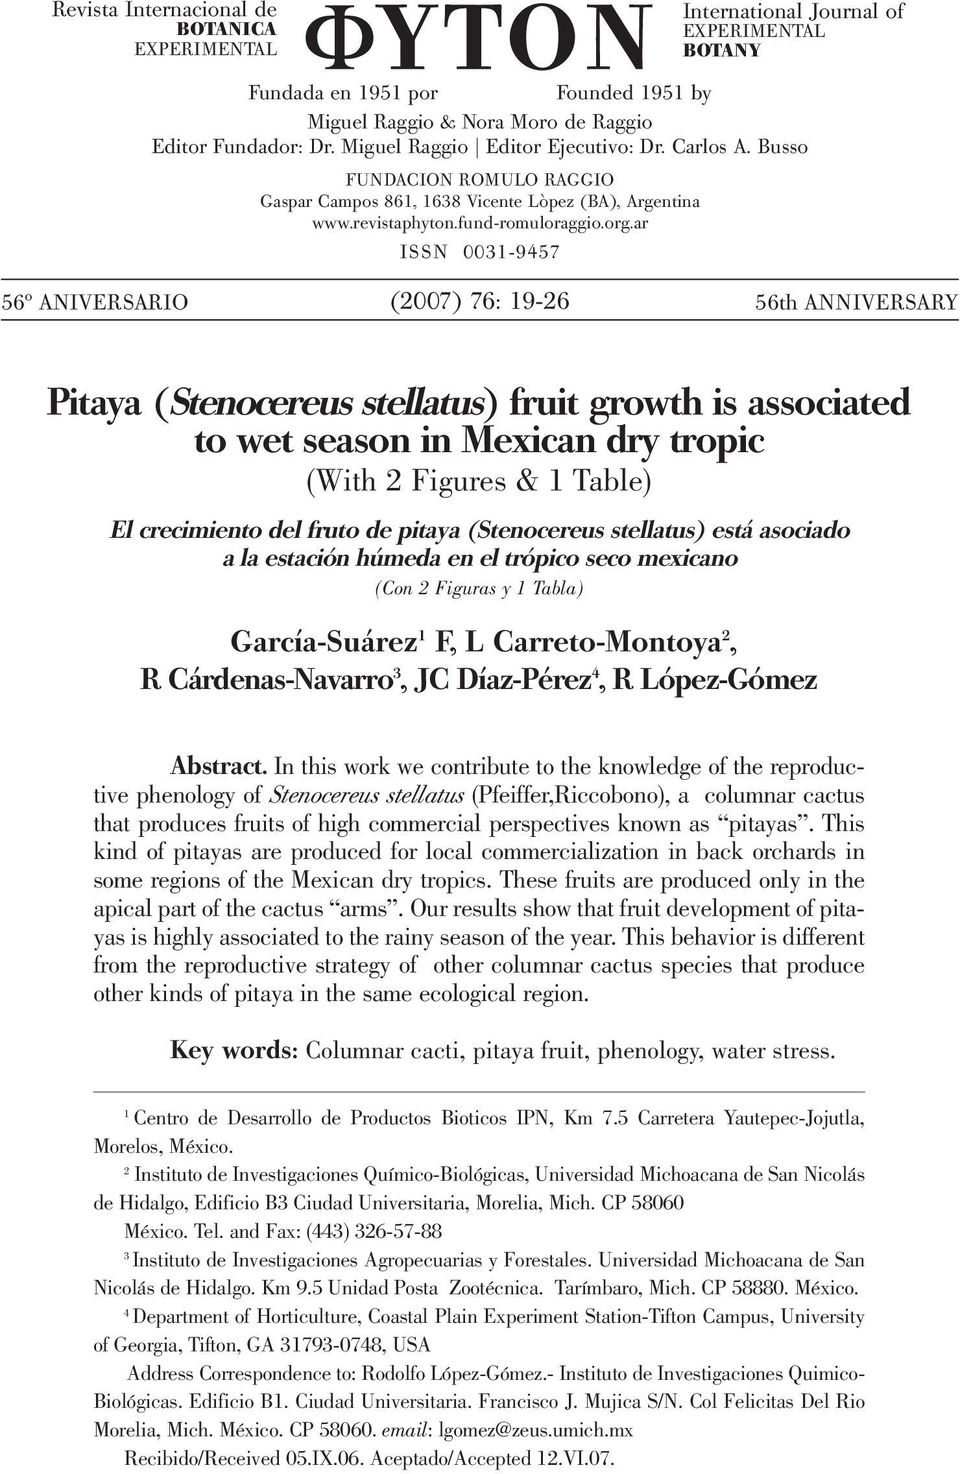 ar ISSN 0031-9457 56º ANIVERSARIO (2007) 76: 19-26 56th ANNIVERSARY Pitaya (Stenocereus stellatus) fruit growth is associated to wet season in Mexican dry tropic (With 2 Figures & 1 Table) El